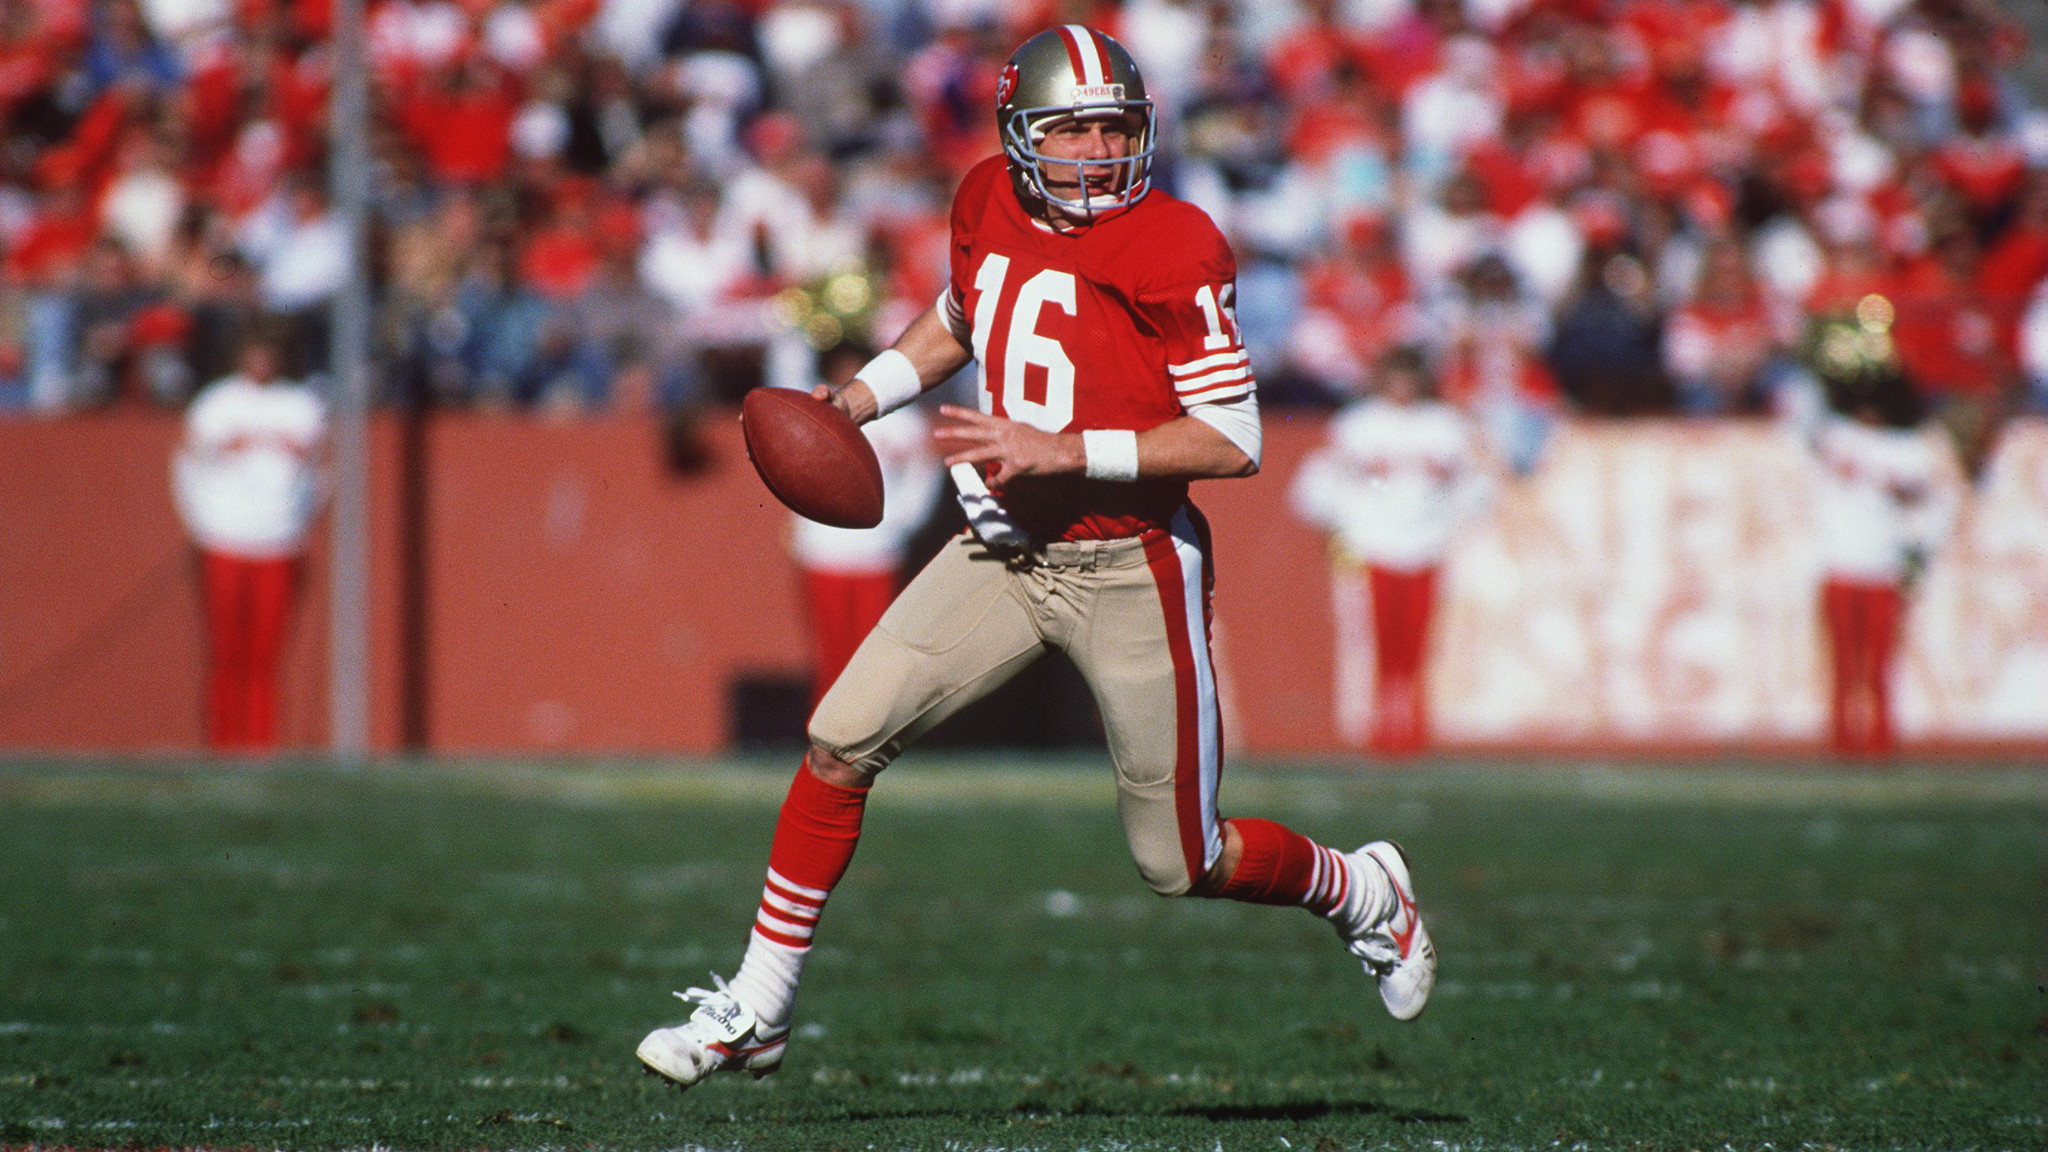 joe montana wallpaper - wallpapersafari